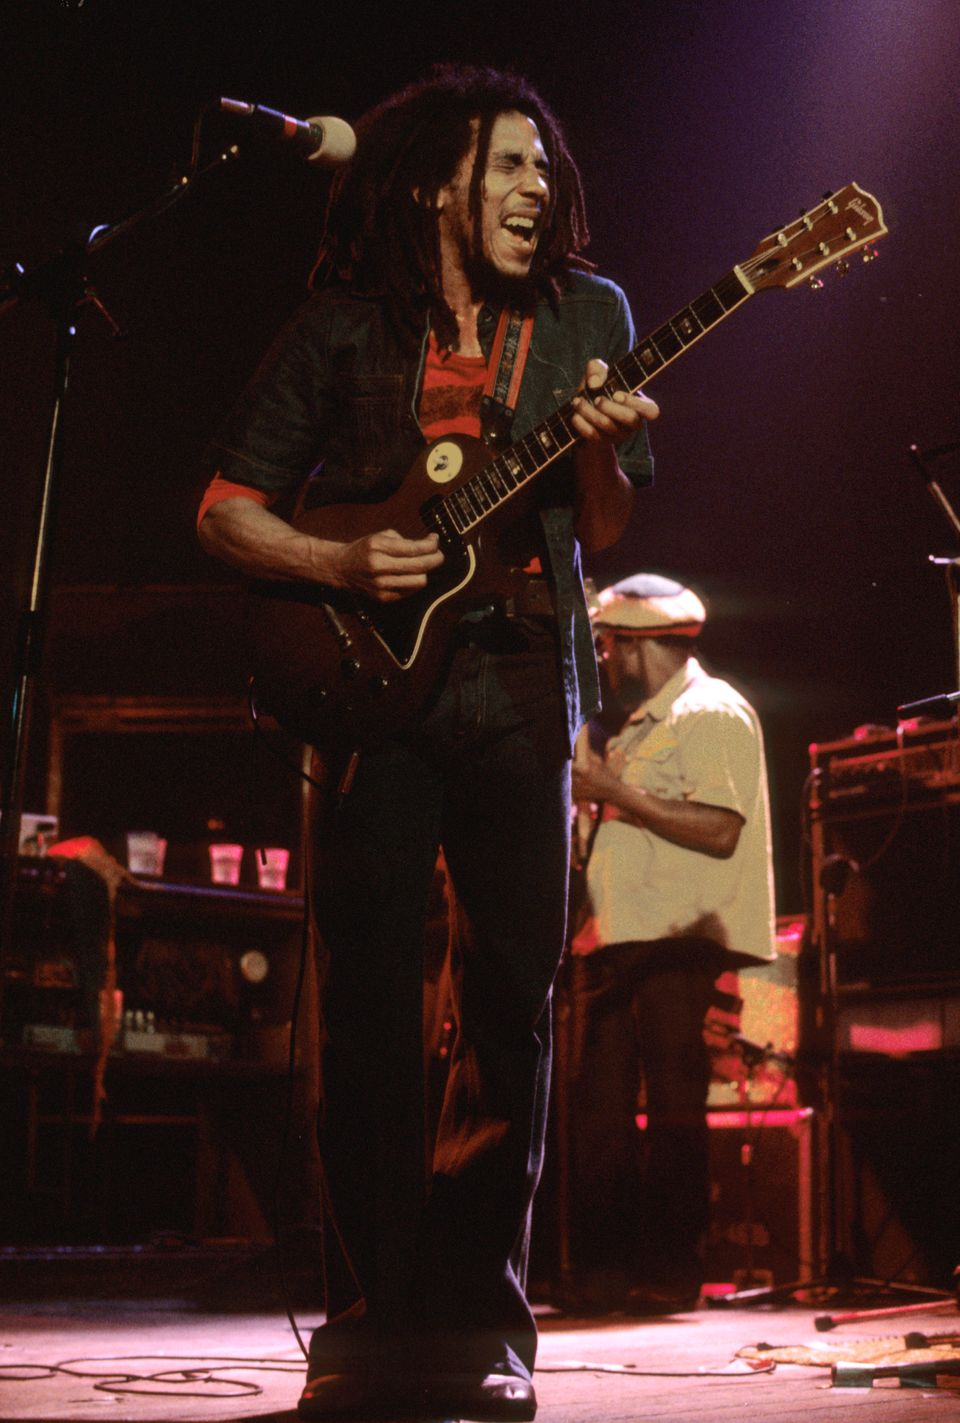 Bob Marley plays his guitar on stage during the gig